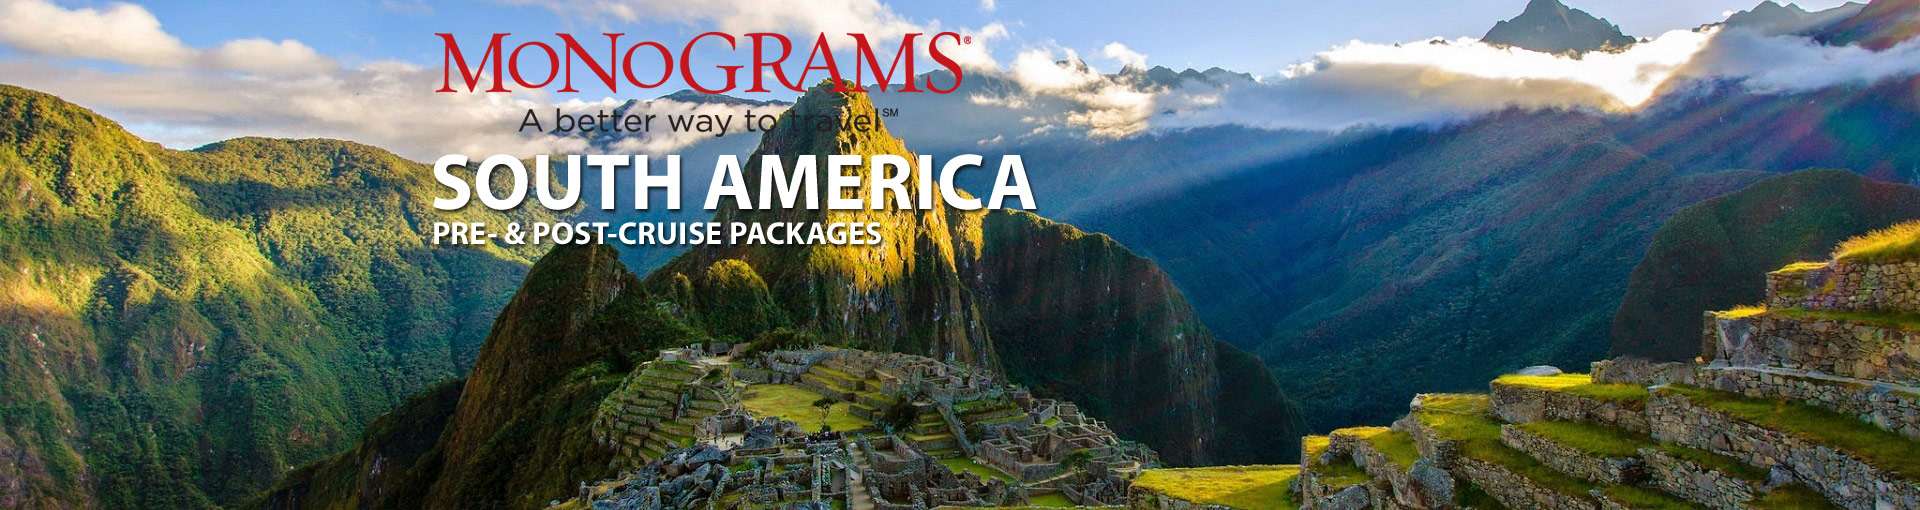 Monograms South America Vacation Packages